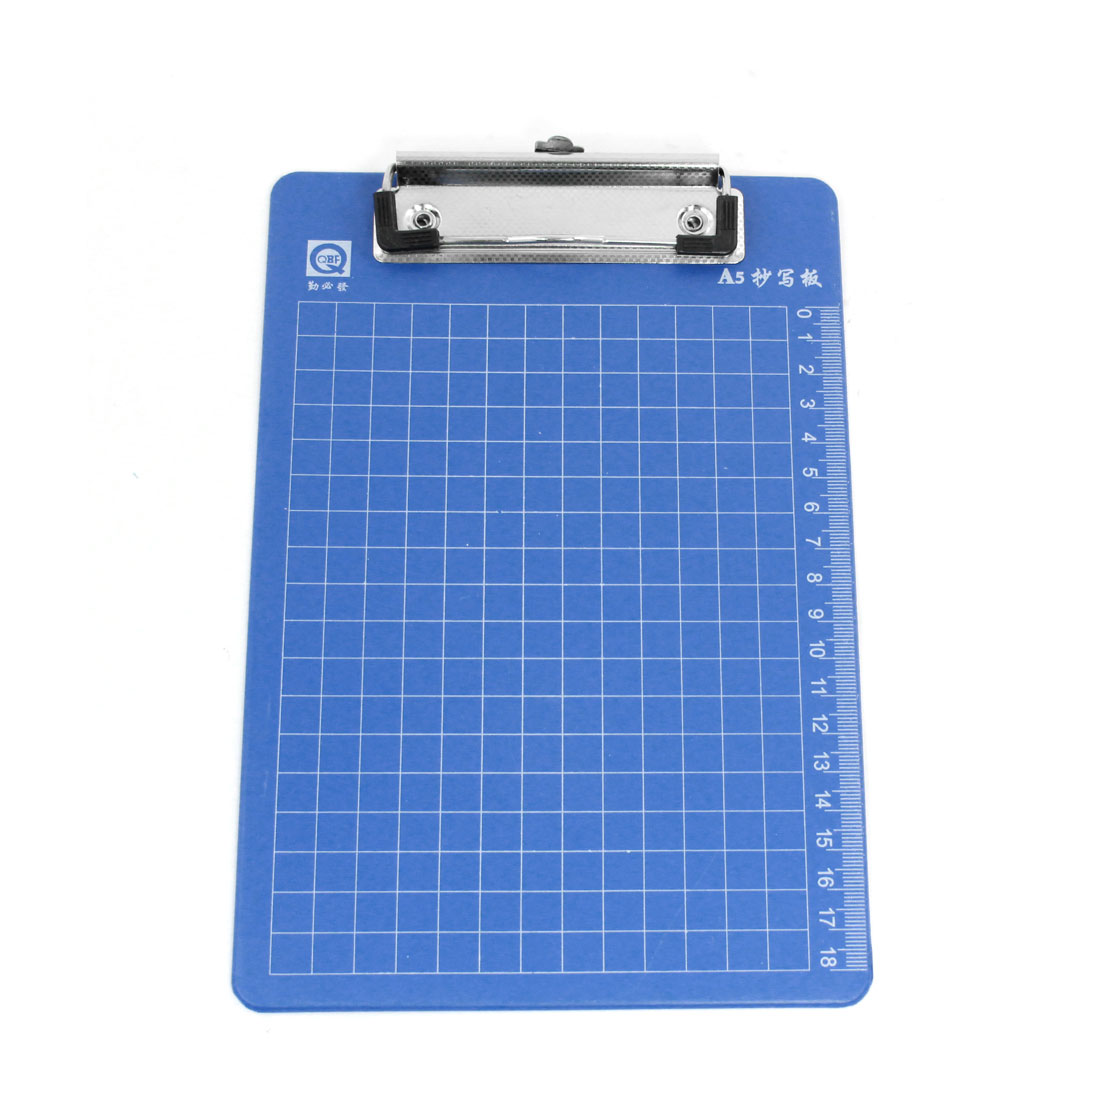 home office a5 record list note paper clear blue clipboard clip board a5 clipboard clip boards